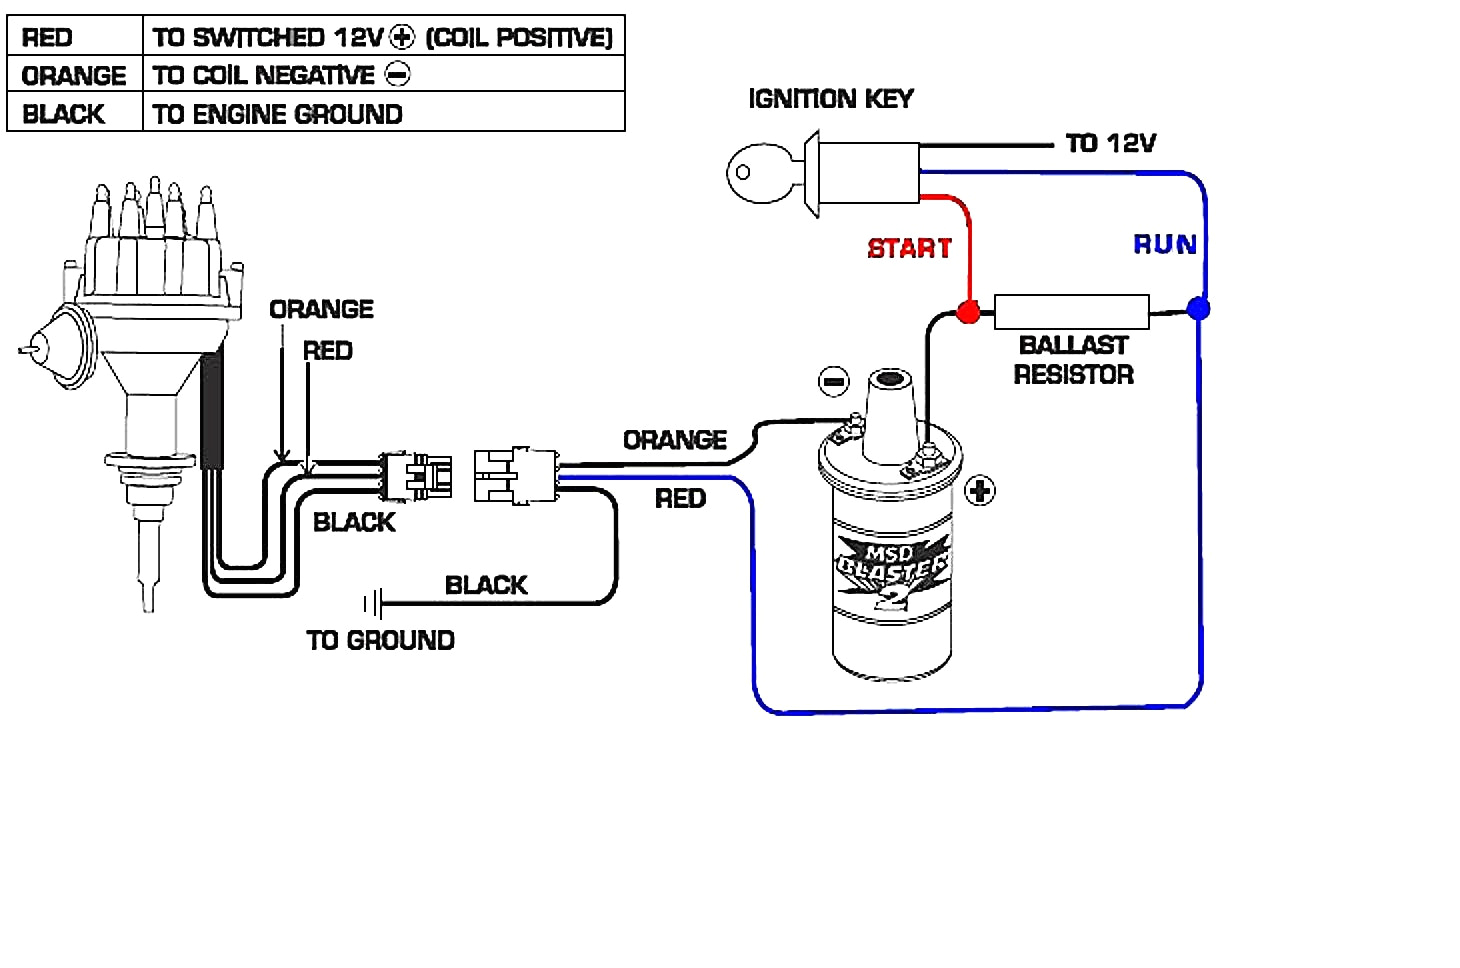 ignition coil wiring diagram enticing reference ford motor inside exceptional distributor 1 msd atomic efi 10 jpg